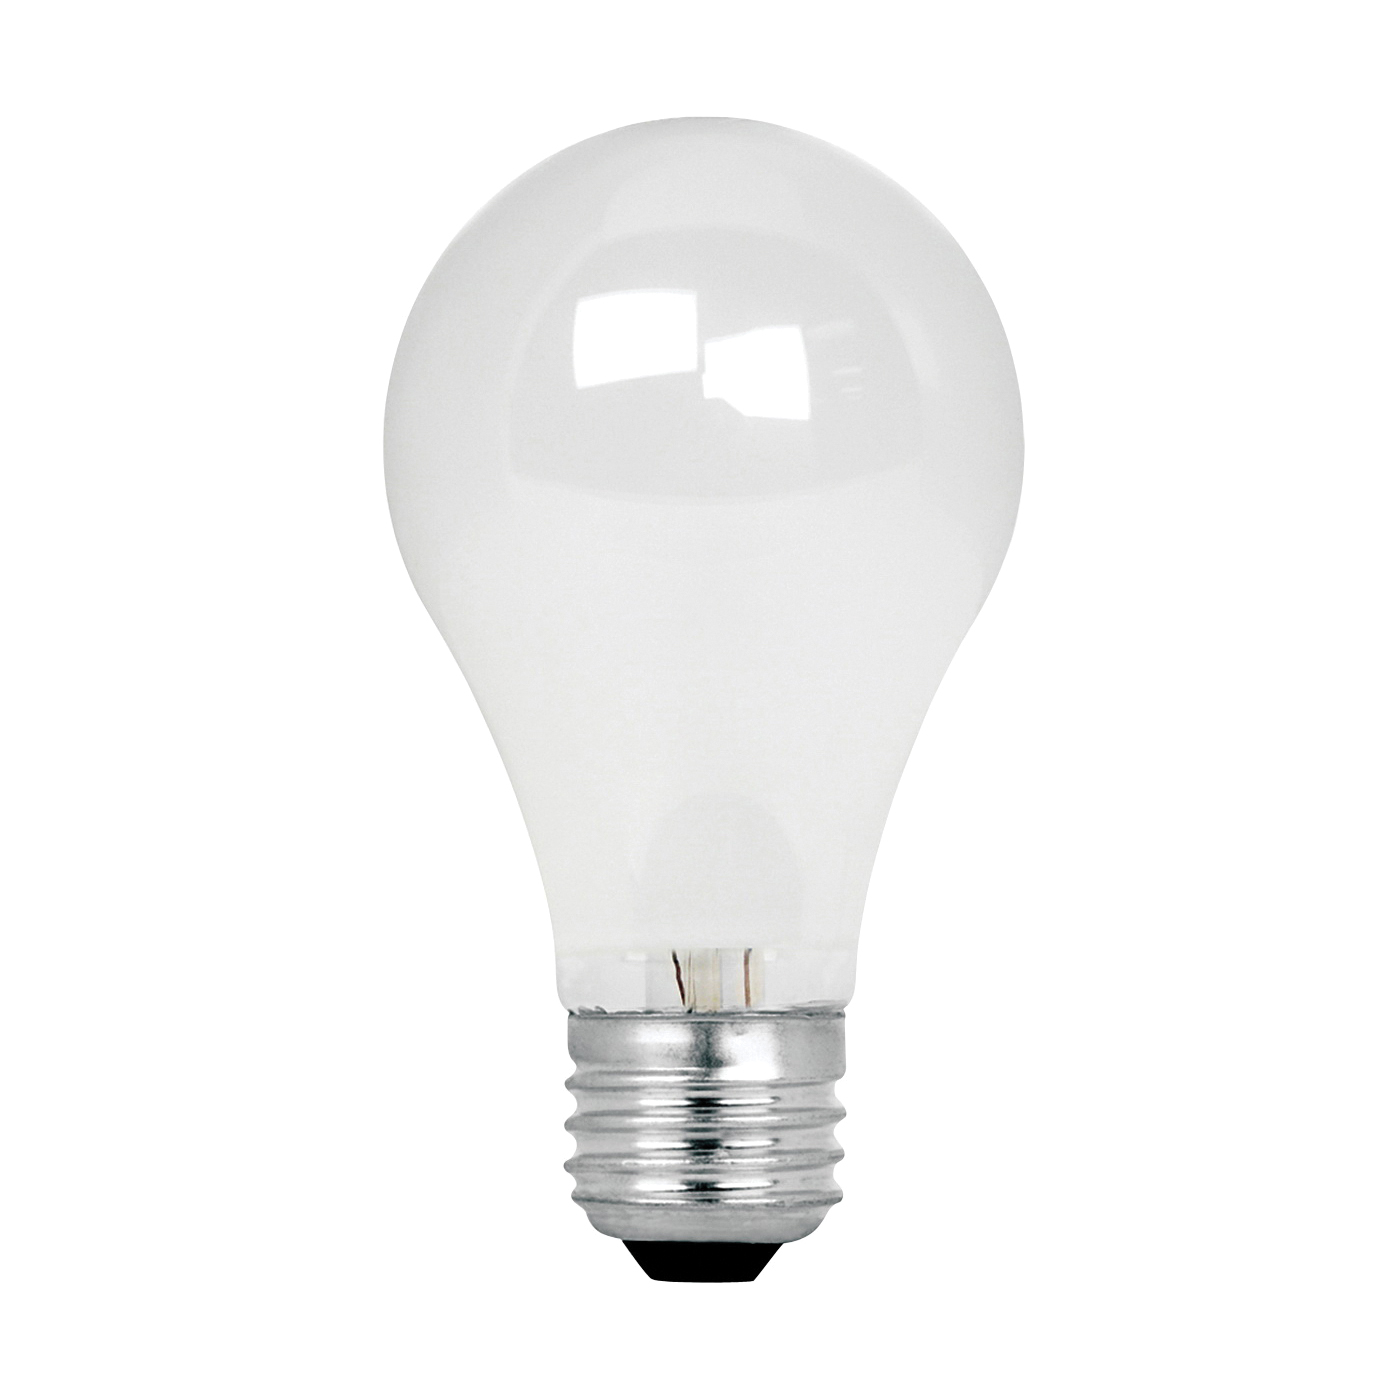 Picture of Feit Electric Q29A/W/4/RP Halogen Lamp, 29 W, Medium E26 Lamp Base, A19 Lamp, Soft White Light, 310 Lumens